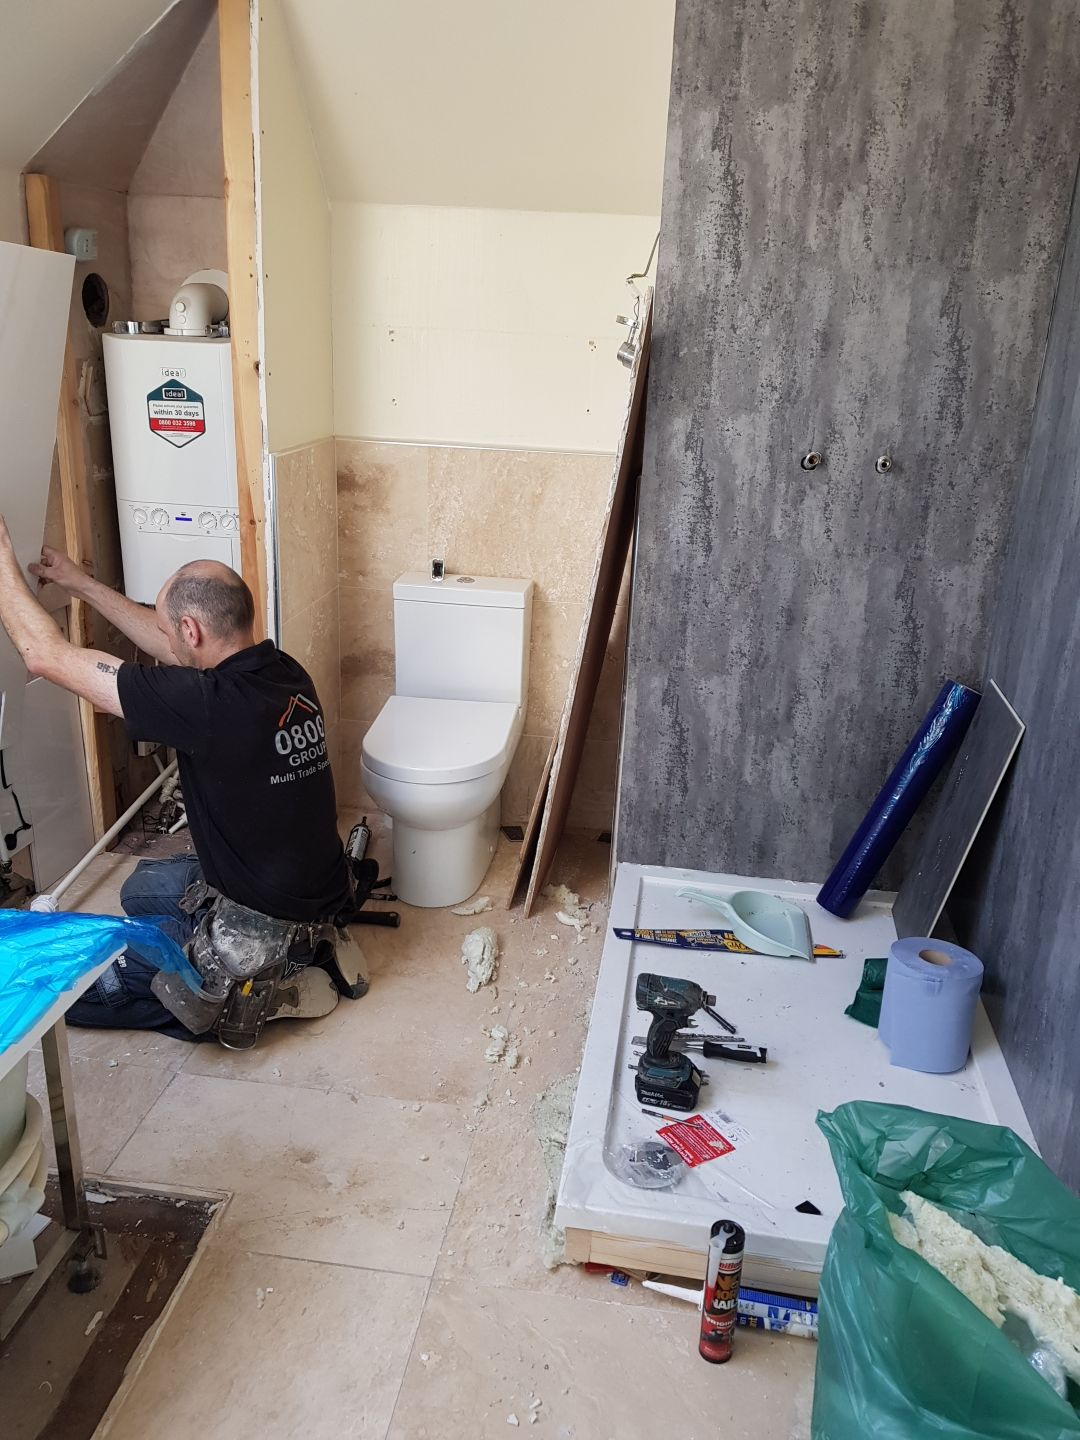 Home maintenance and building works